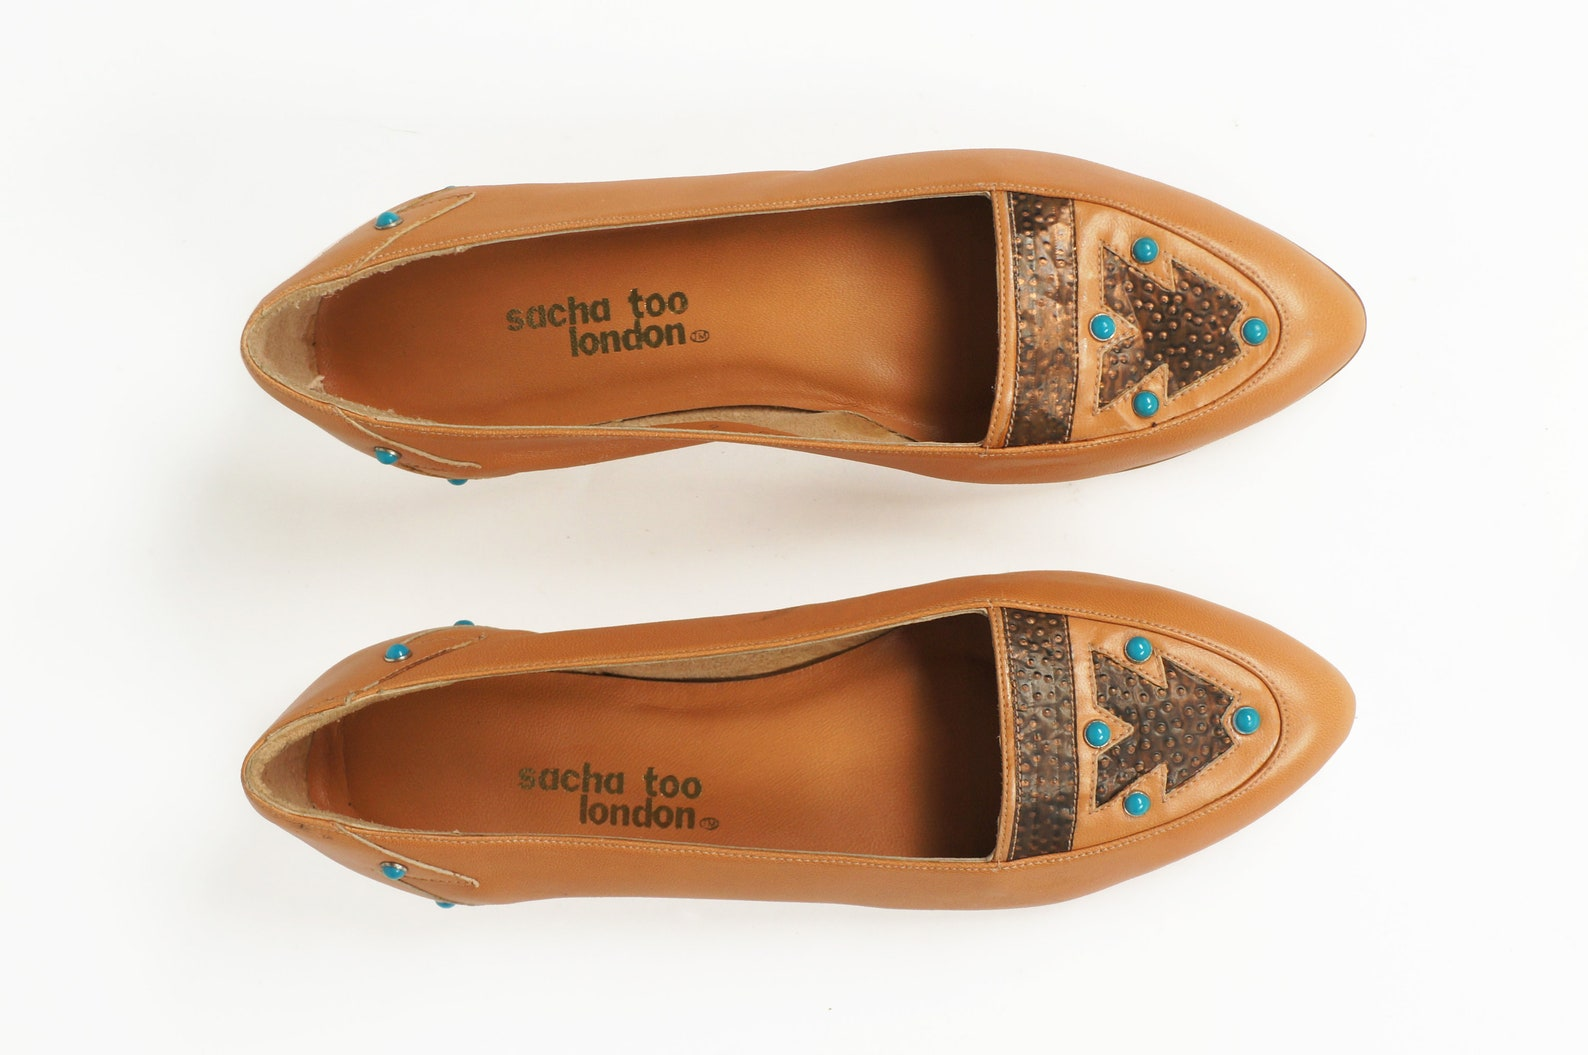 80s leather turquoise ballet flats southwest style slip ons 7.5 b unworn